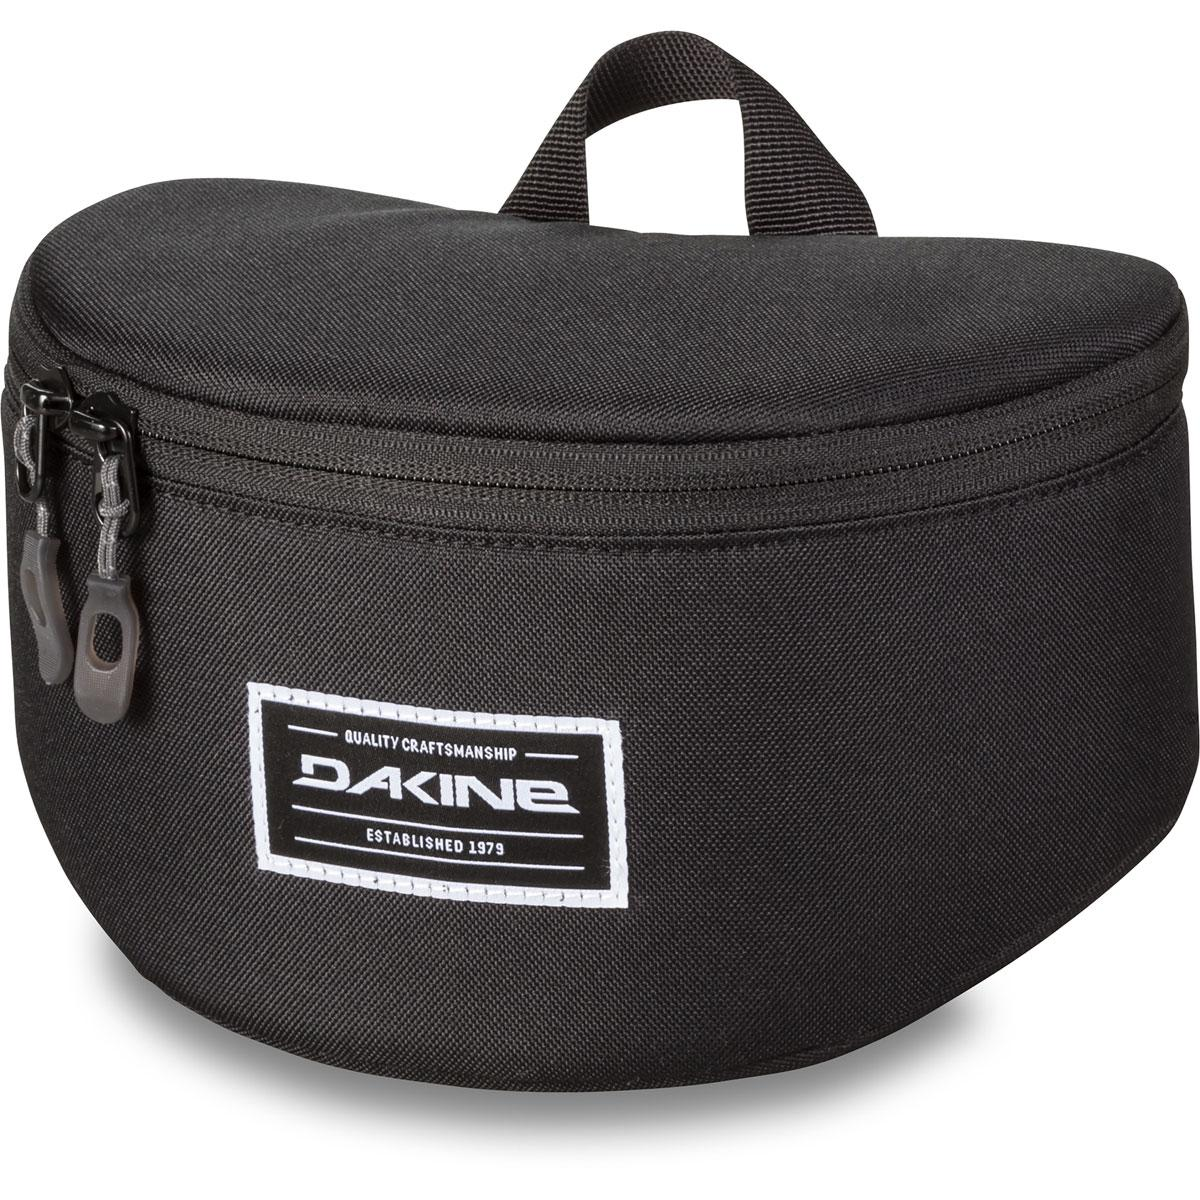 Dakine Goggle Stash in Black